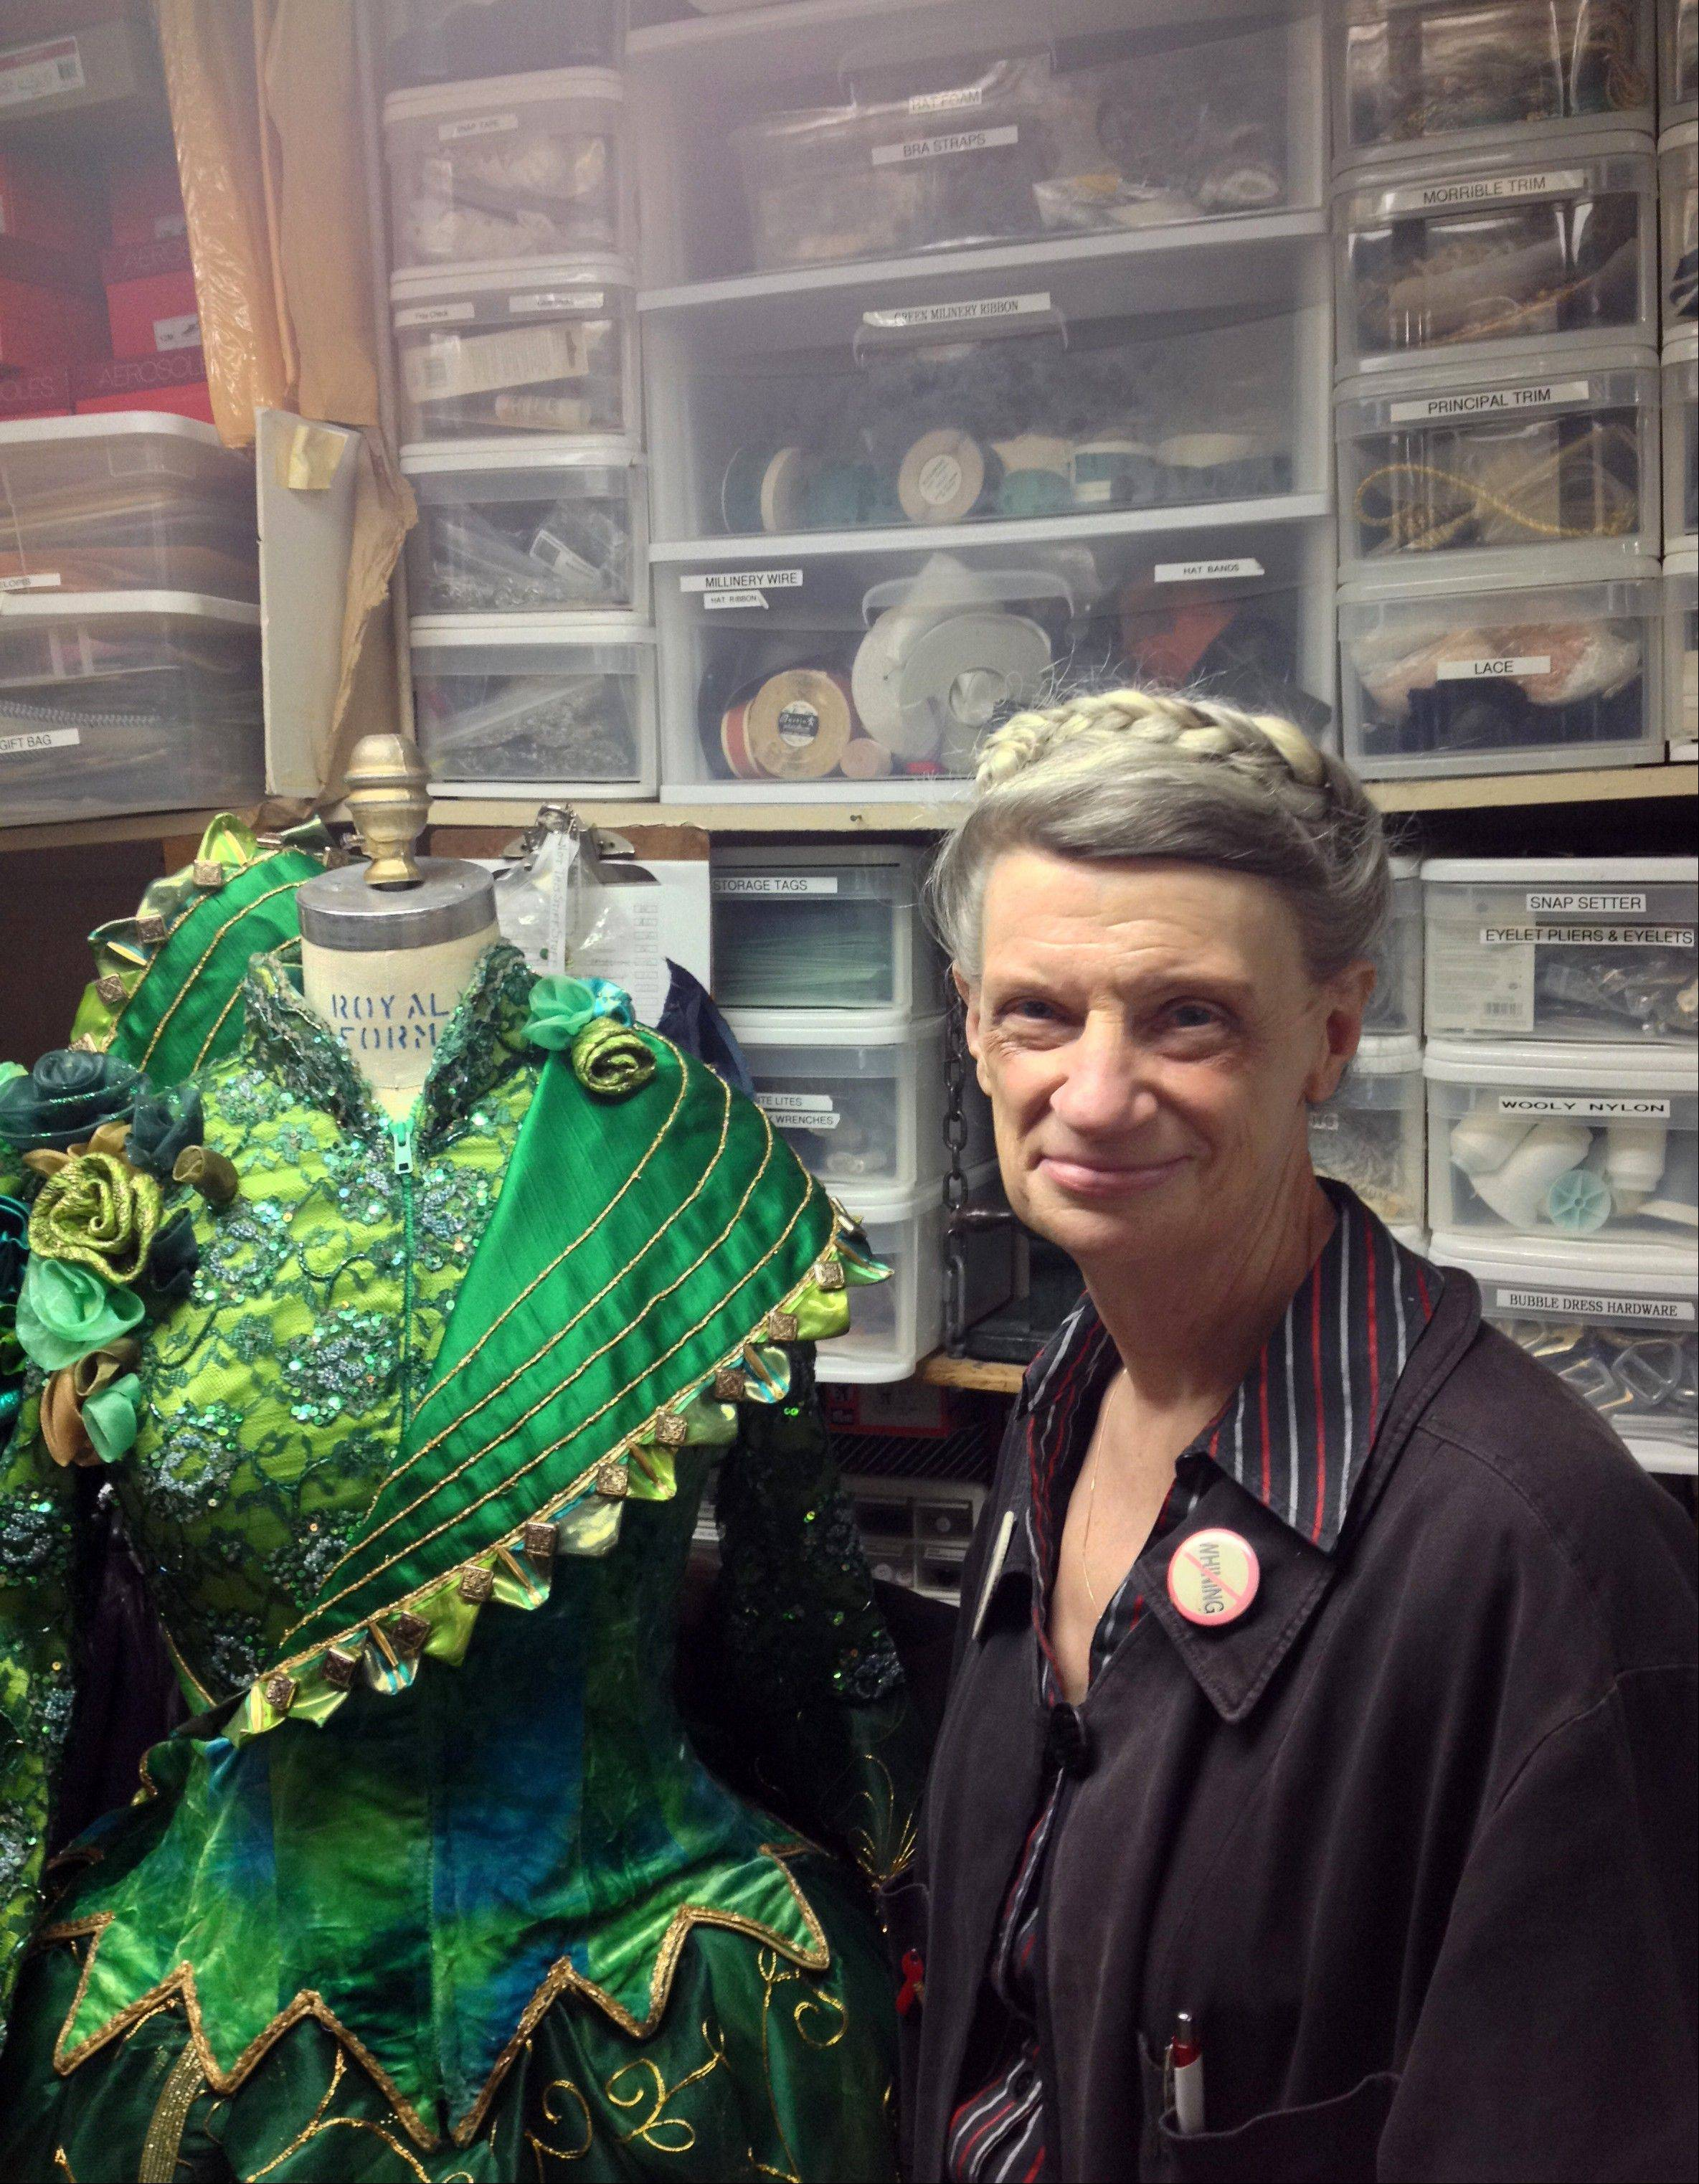 Alyce Gilbert, production wardrobe supervisor at Broadway�s �Wicked,� shows one of the costumes in the show at the Gershwin Theatre in New York. Gilbert has been working backstage at the musical since its out-of-town tryouts in San Francisco in 2003.